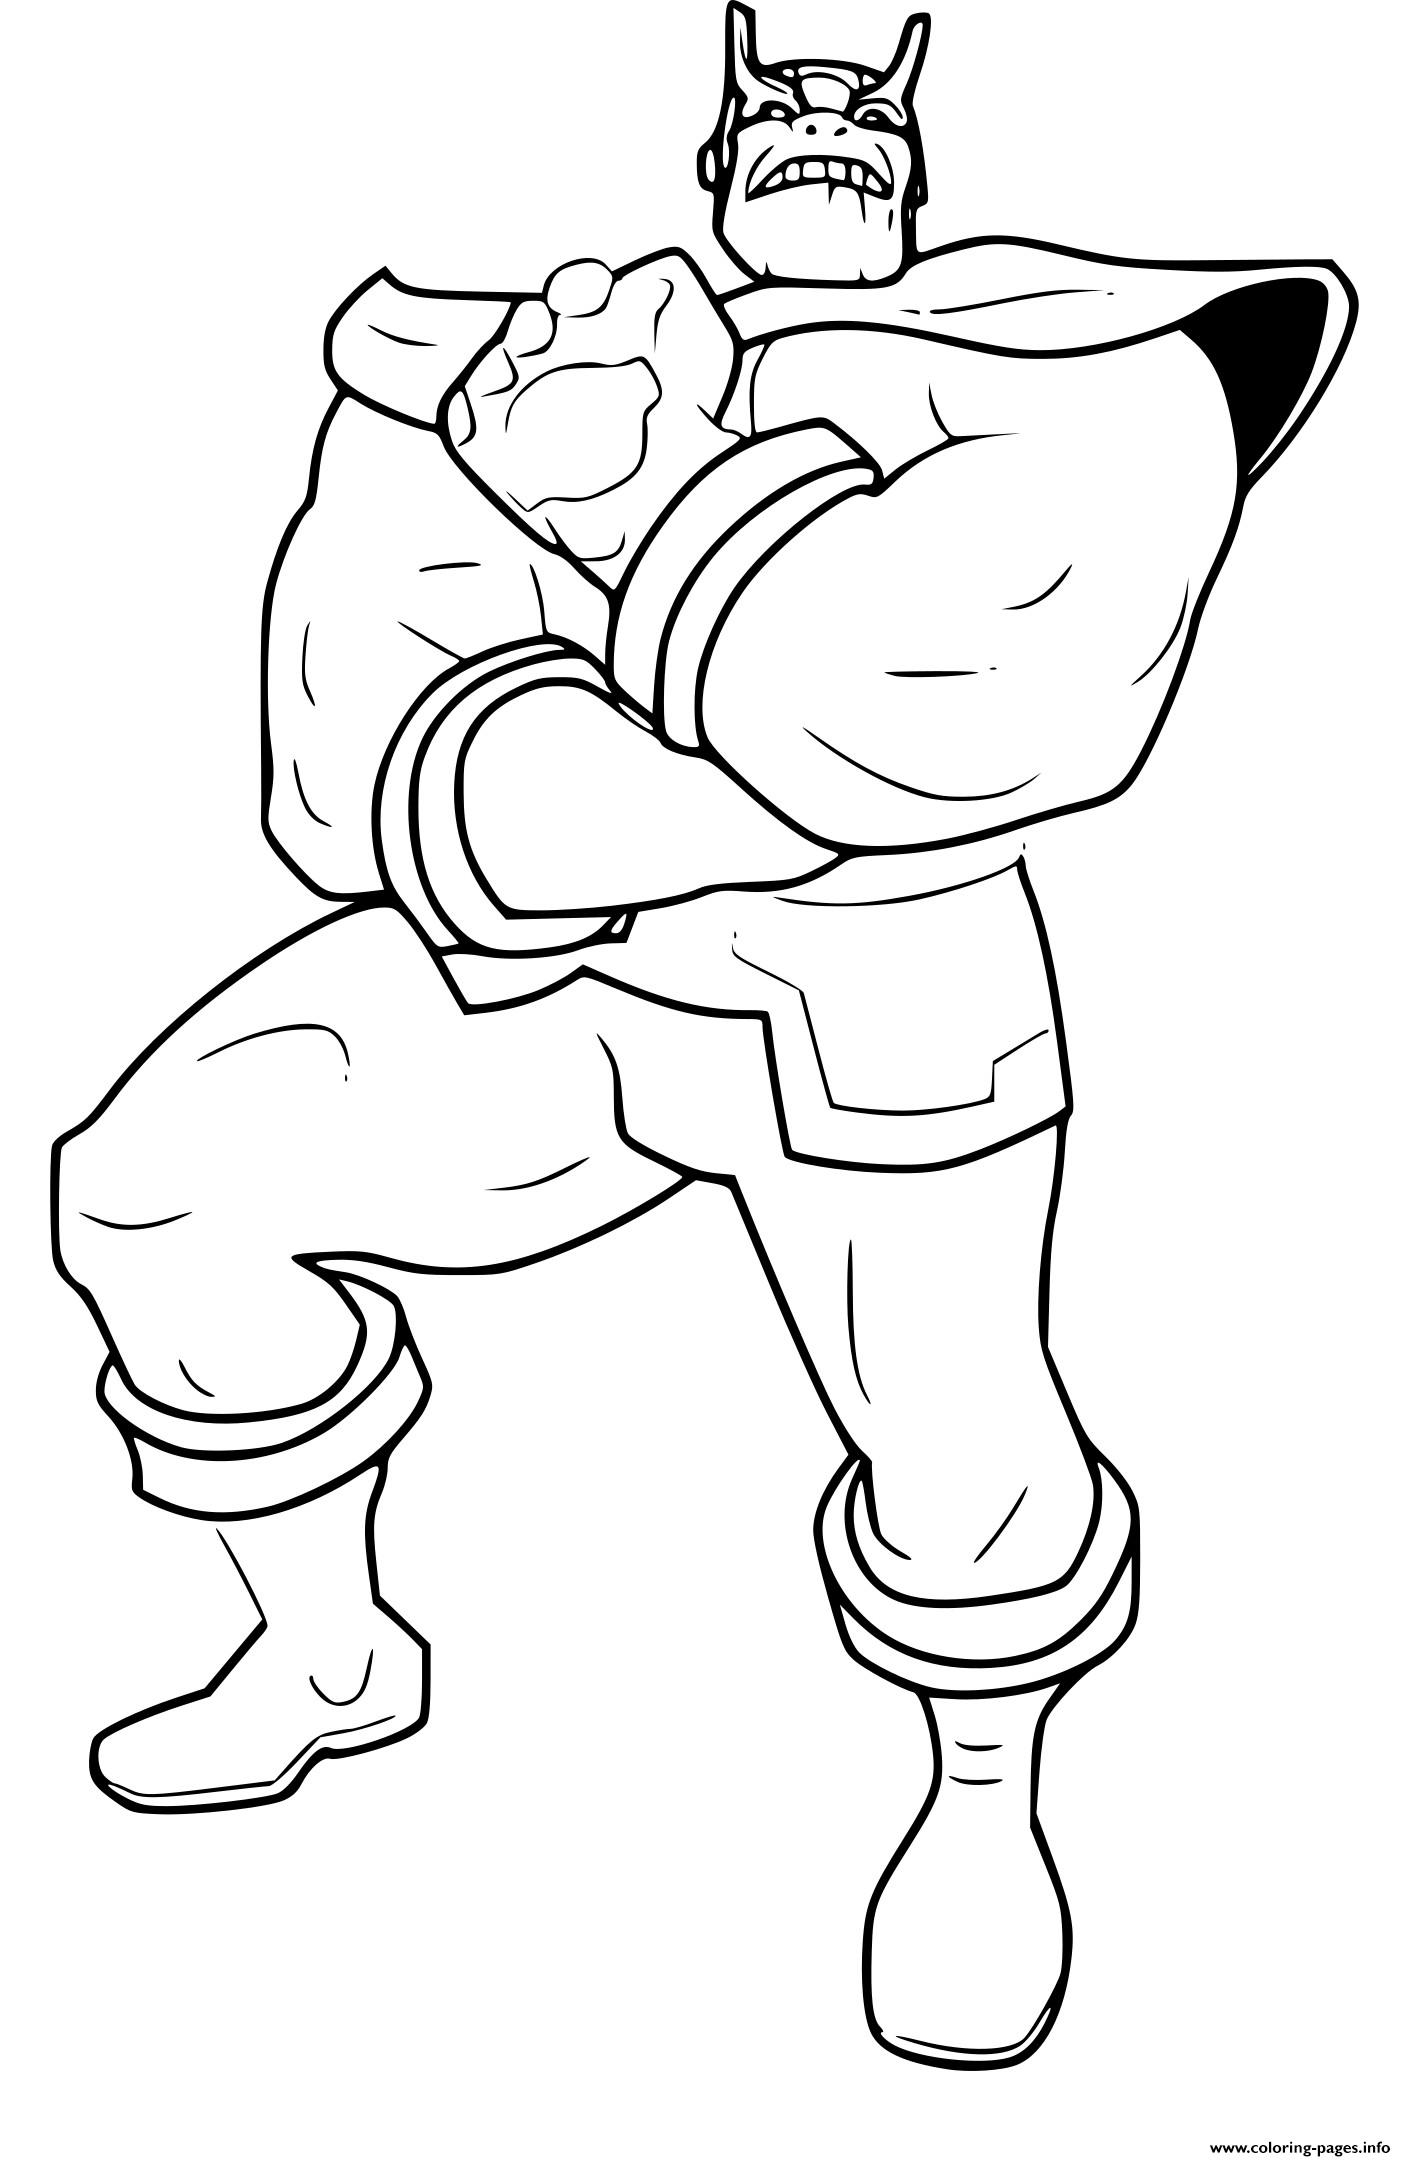 avengers endgame thanos coloring pages captain marvel avengers endgame coloring pages printable endgame coloring avengers pages thanos